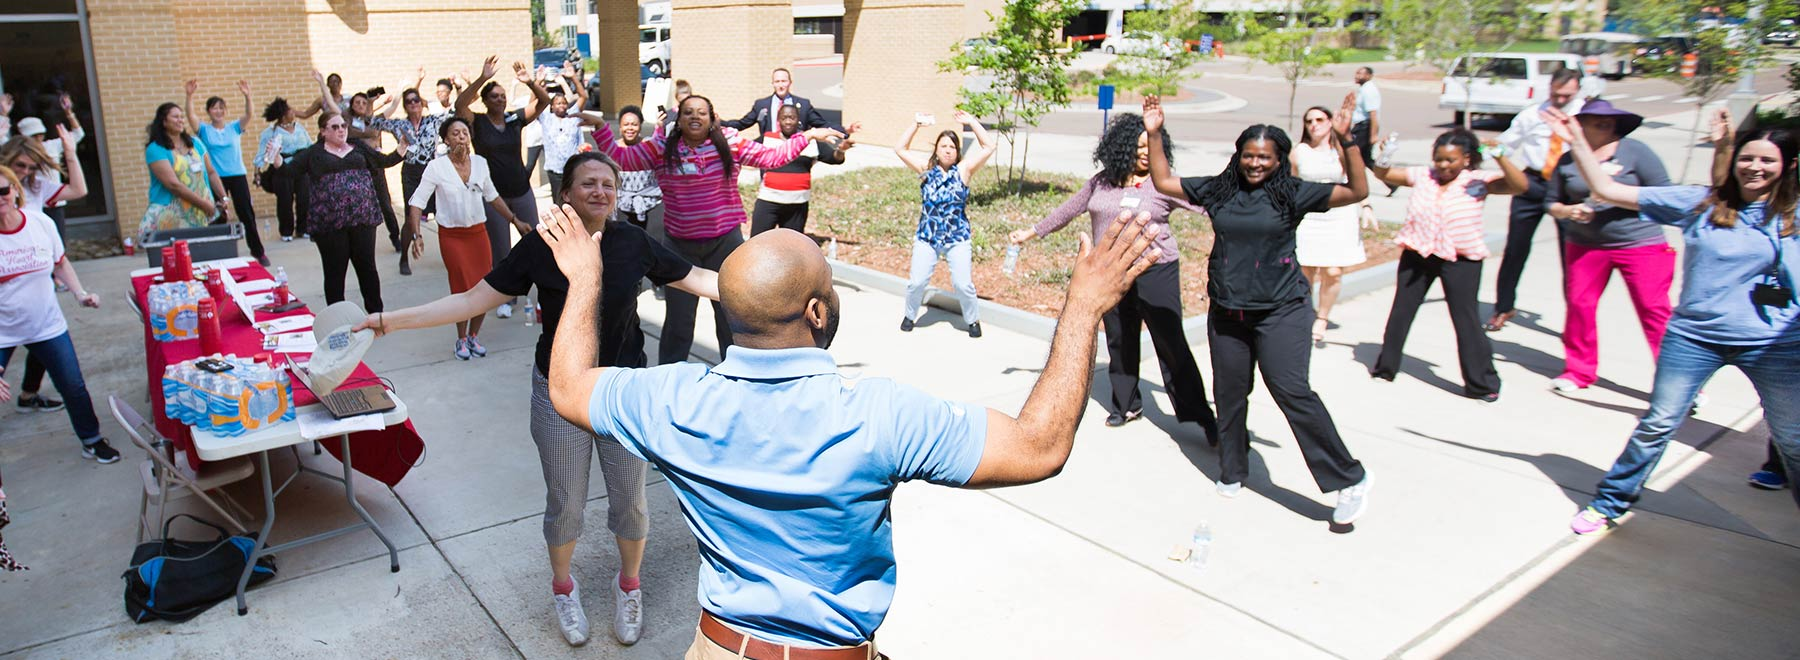 Educator leads a group in outdoor exercise